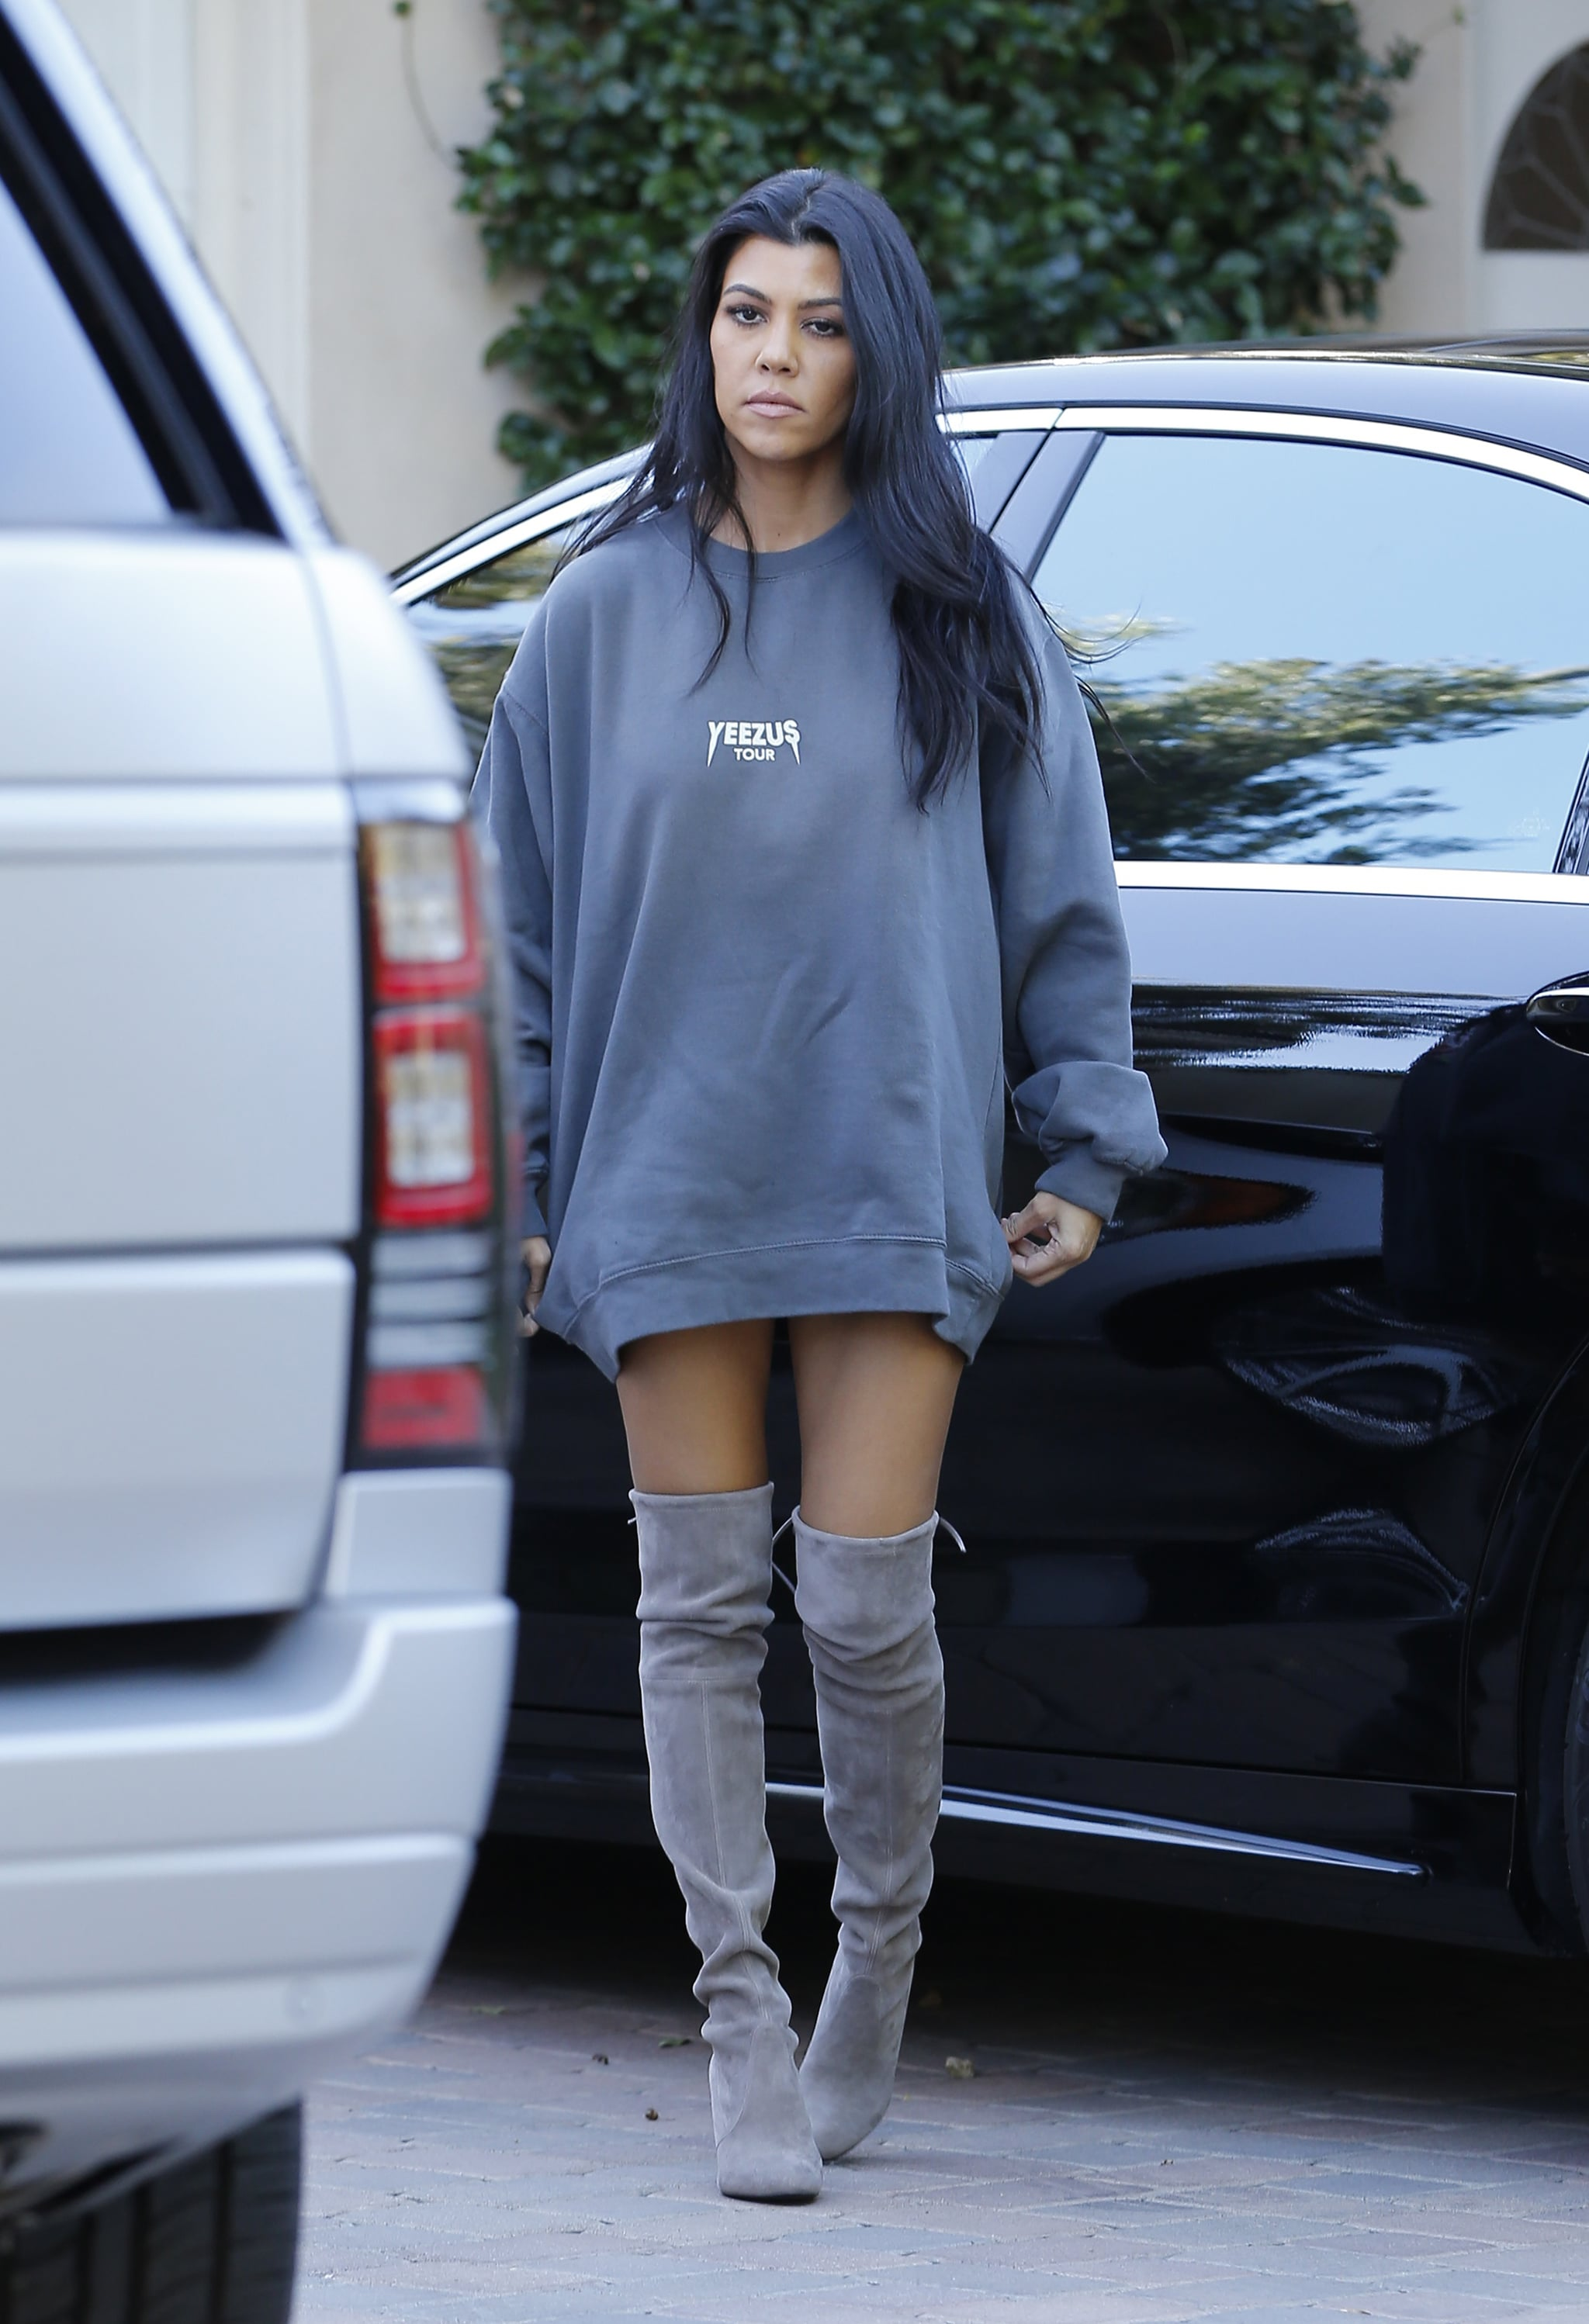 Kourtney Kardashian Kim Kardashian Is Lampshading Like Whoa In These Lace Up Boots Popsugar